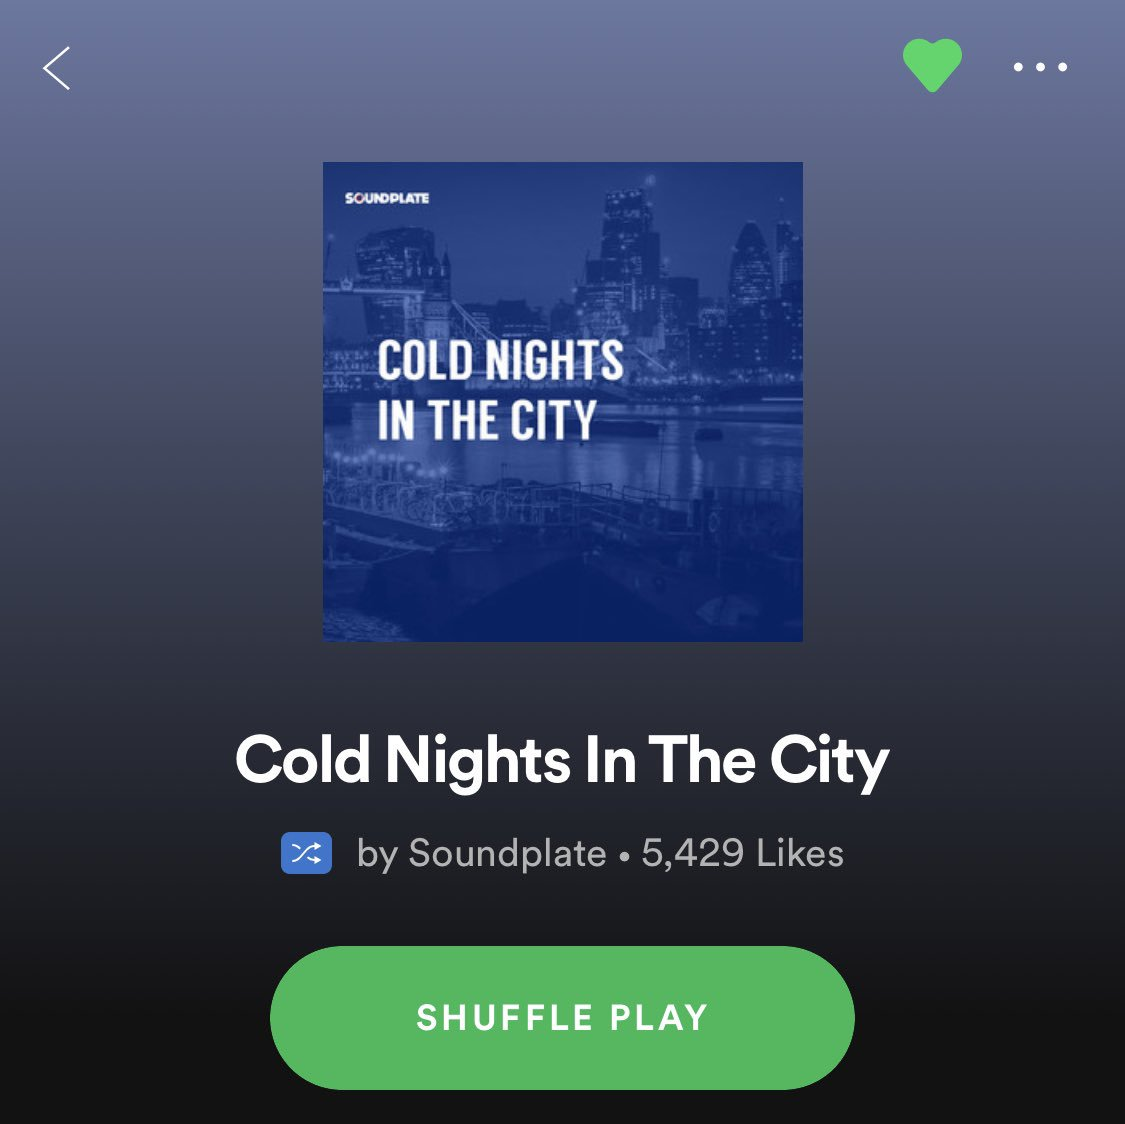 Just had my new song 'NiteVibe' added to this #Spotify #Playlist by label and curators @Soundplate  I appreciate the add 🙏🏾